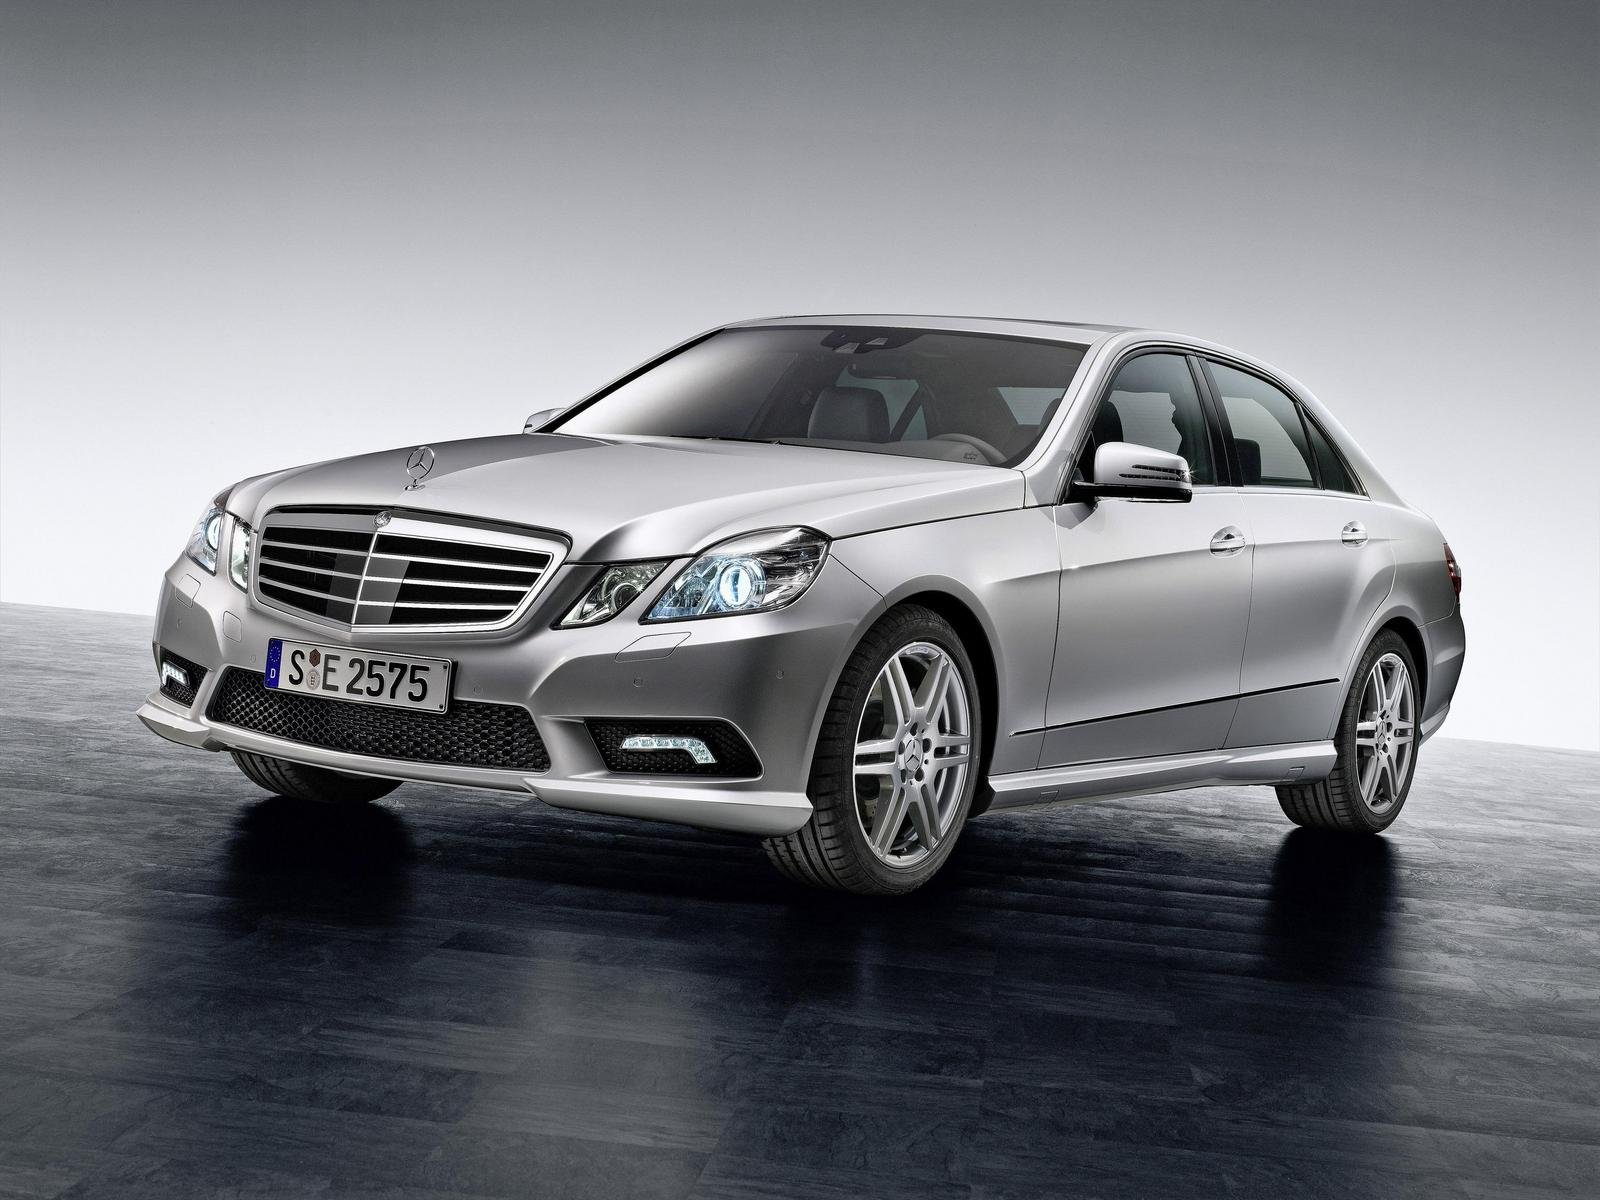 Merc E CLASS SALOON 2009 2013  W212  Ft Wing DRIVER SIDE RIGHT